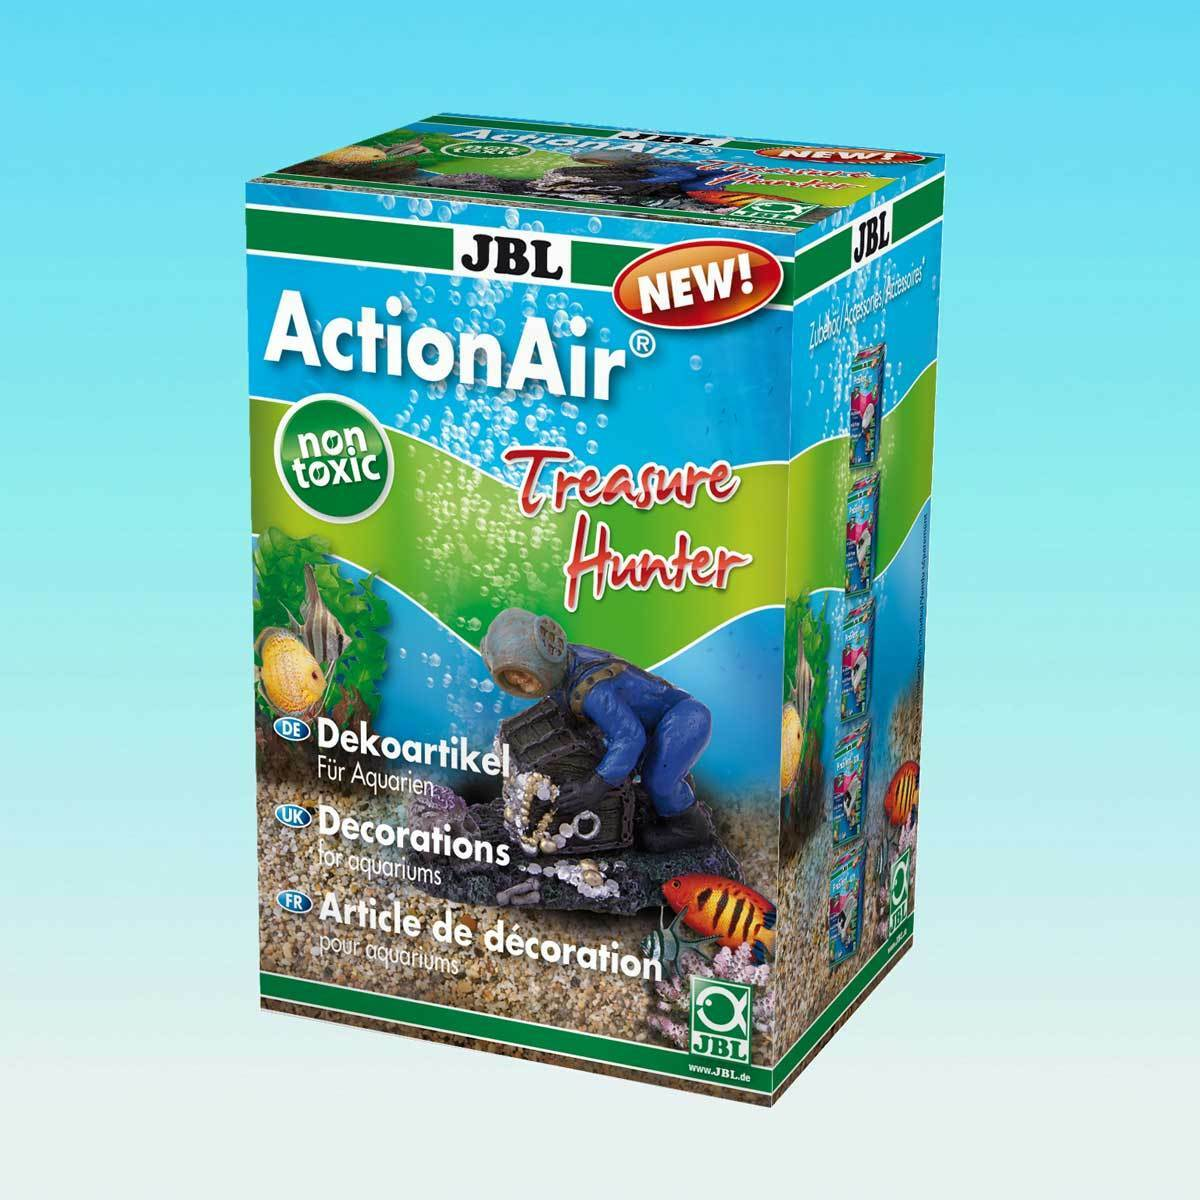 JBL ActionAir Treasure Hunter - Ausströmer Dekoration Deko Zubehör Aquarium